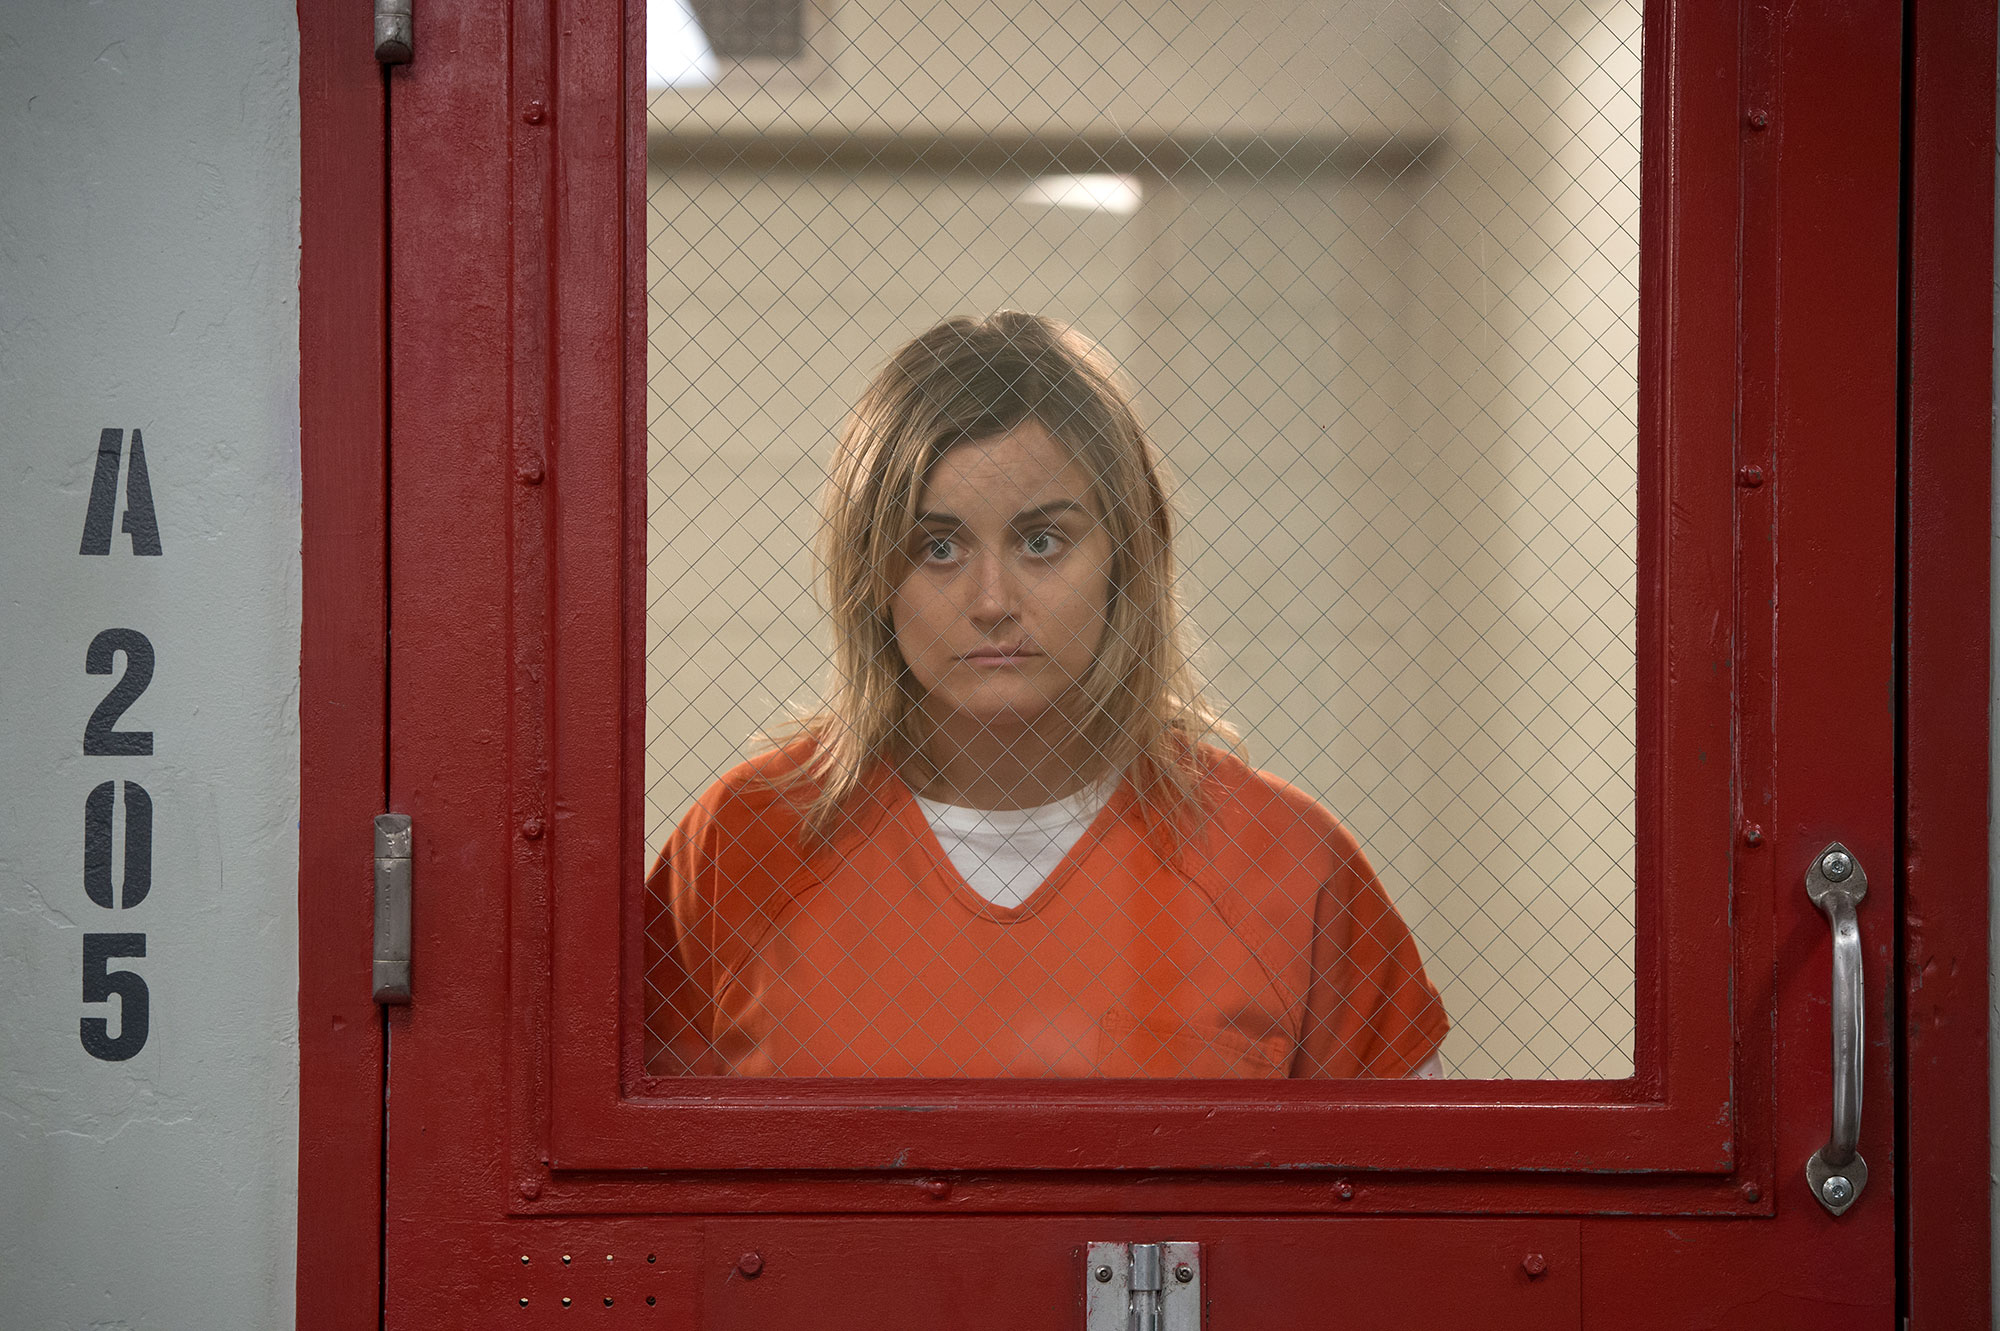 """Taylor Schilling Was Ready for 'Orange Is the New Black' to End: '7 Years Is a Long Time' - Taylor Schilling on """"Orange is The New Black"""""""